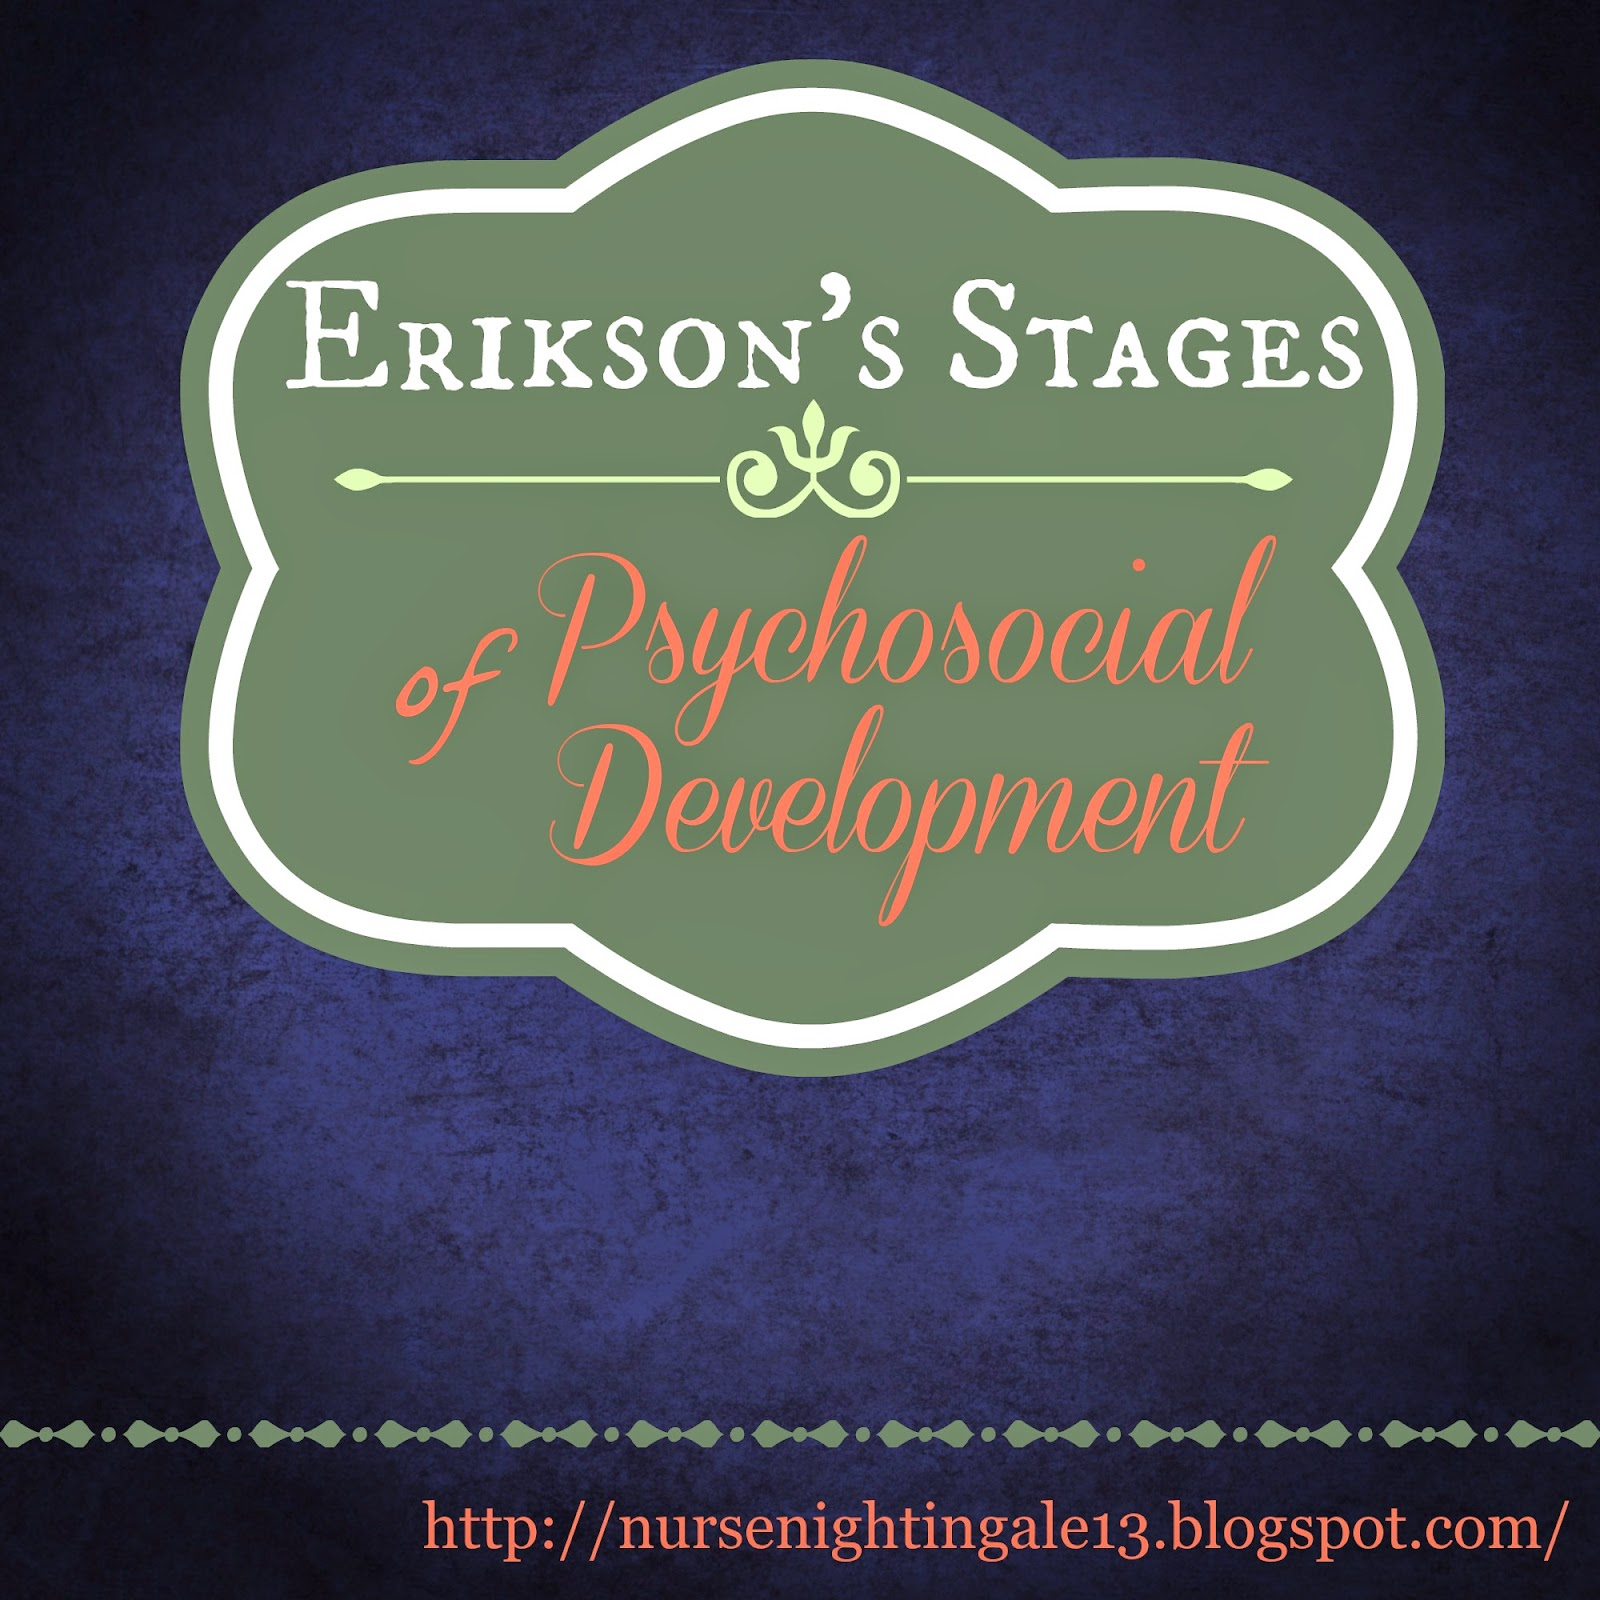 eriksons stages of psychosocial development Posts about erikson's stages of psychosocial development written by girl +talk.